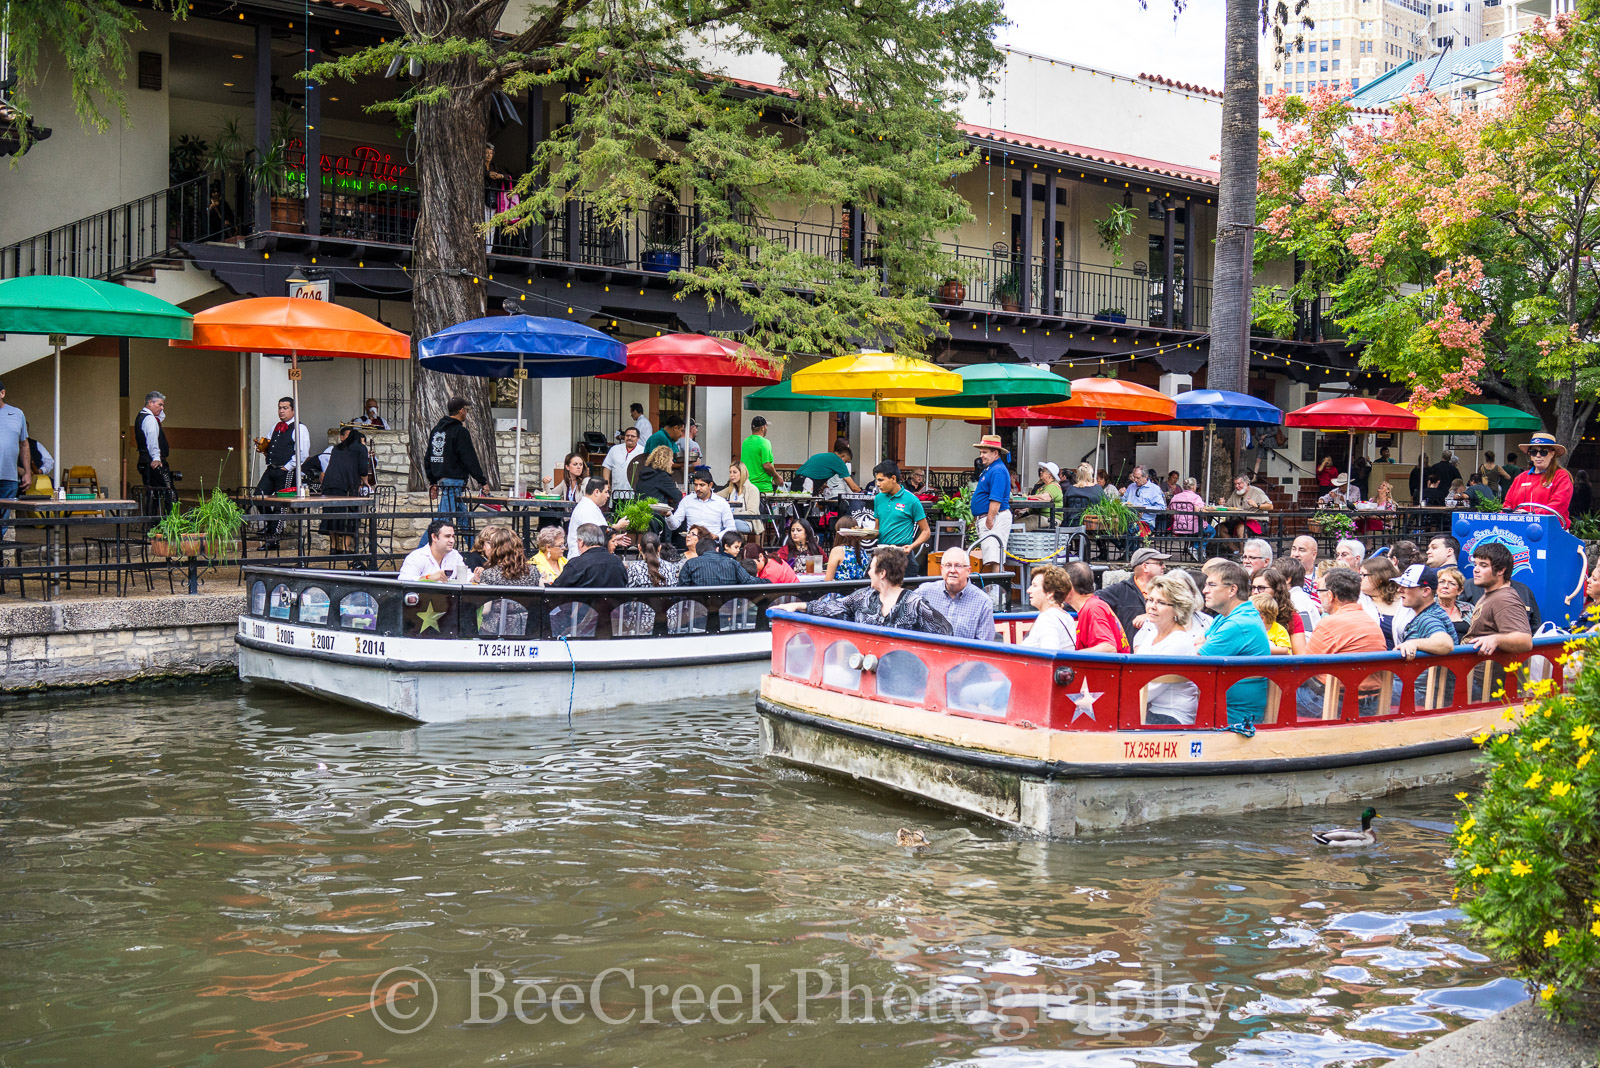 River Boat, River Walk, San Antonio, city, downtown, photo